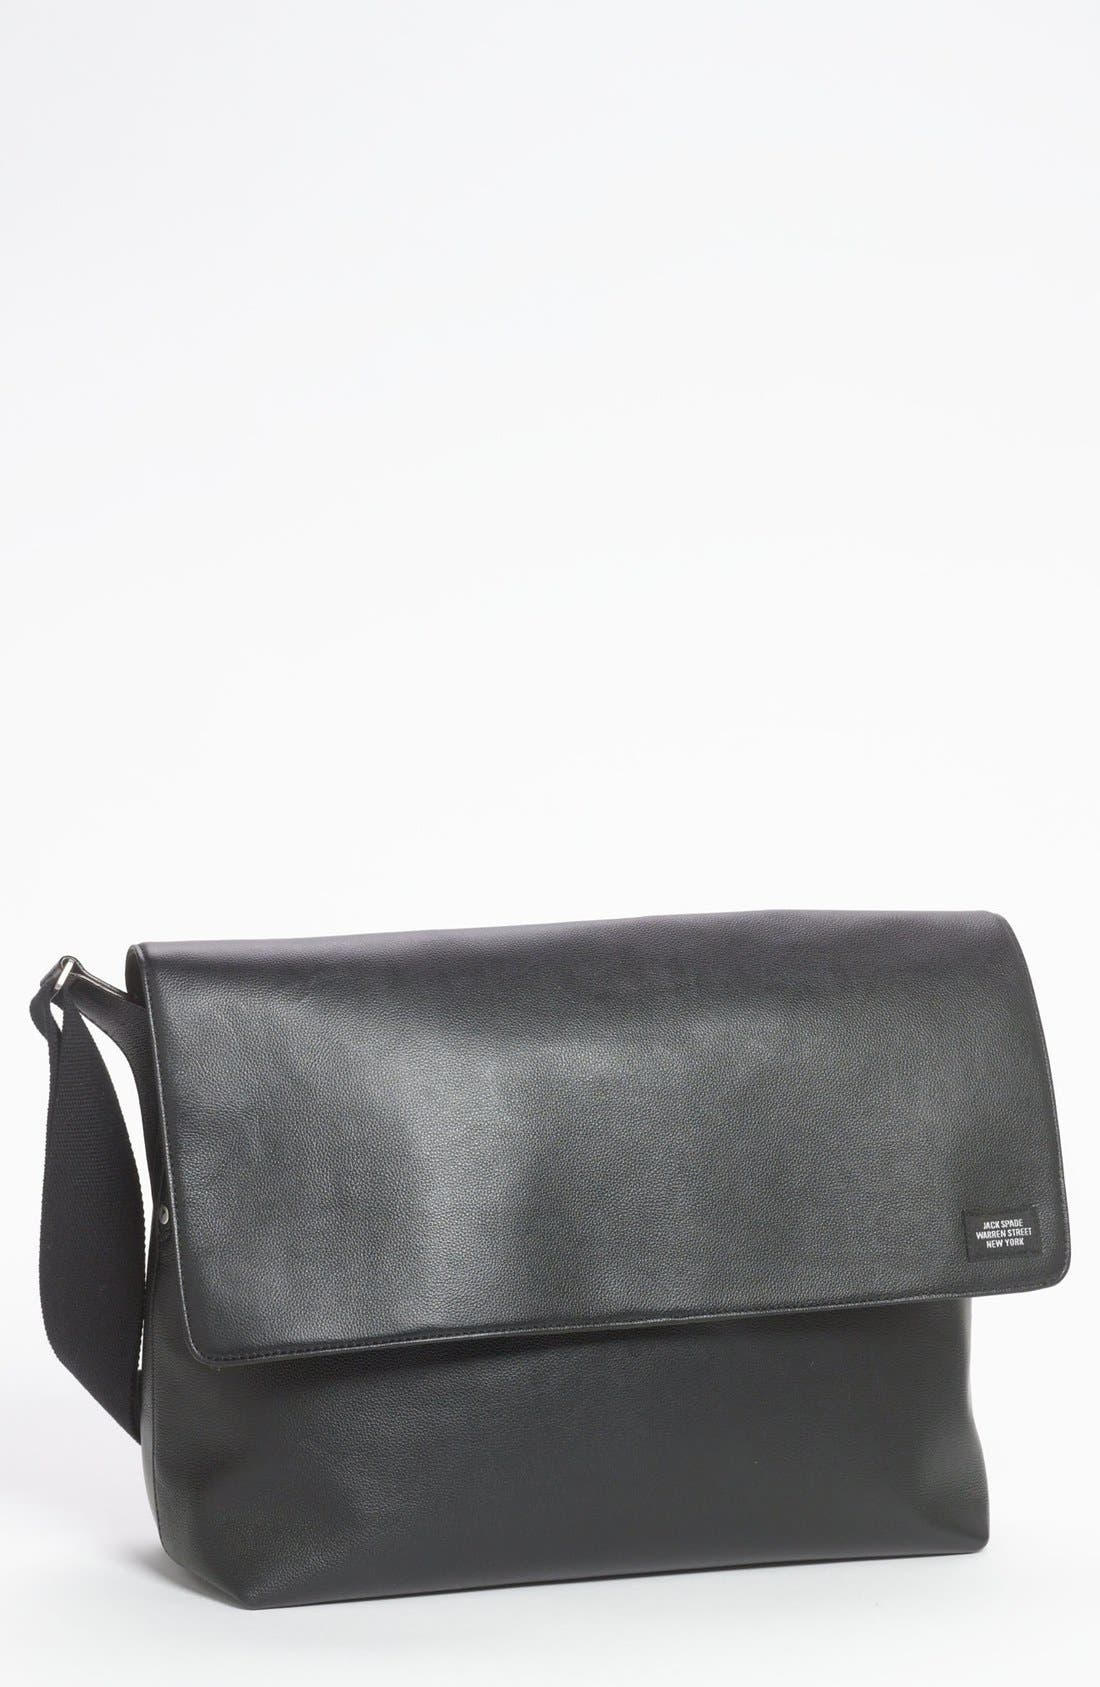 Alternate Image 1 Selected - Jack Spade 'Field' Messenger Bag